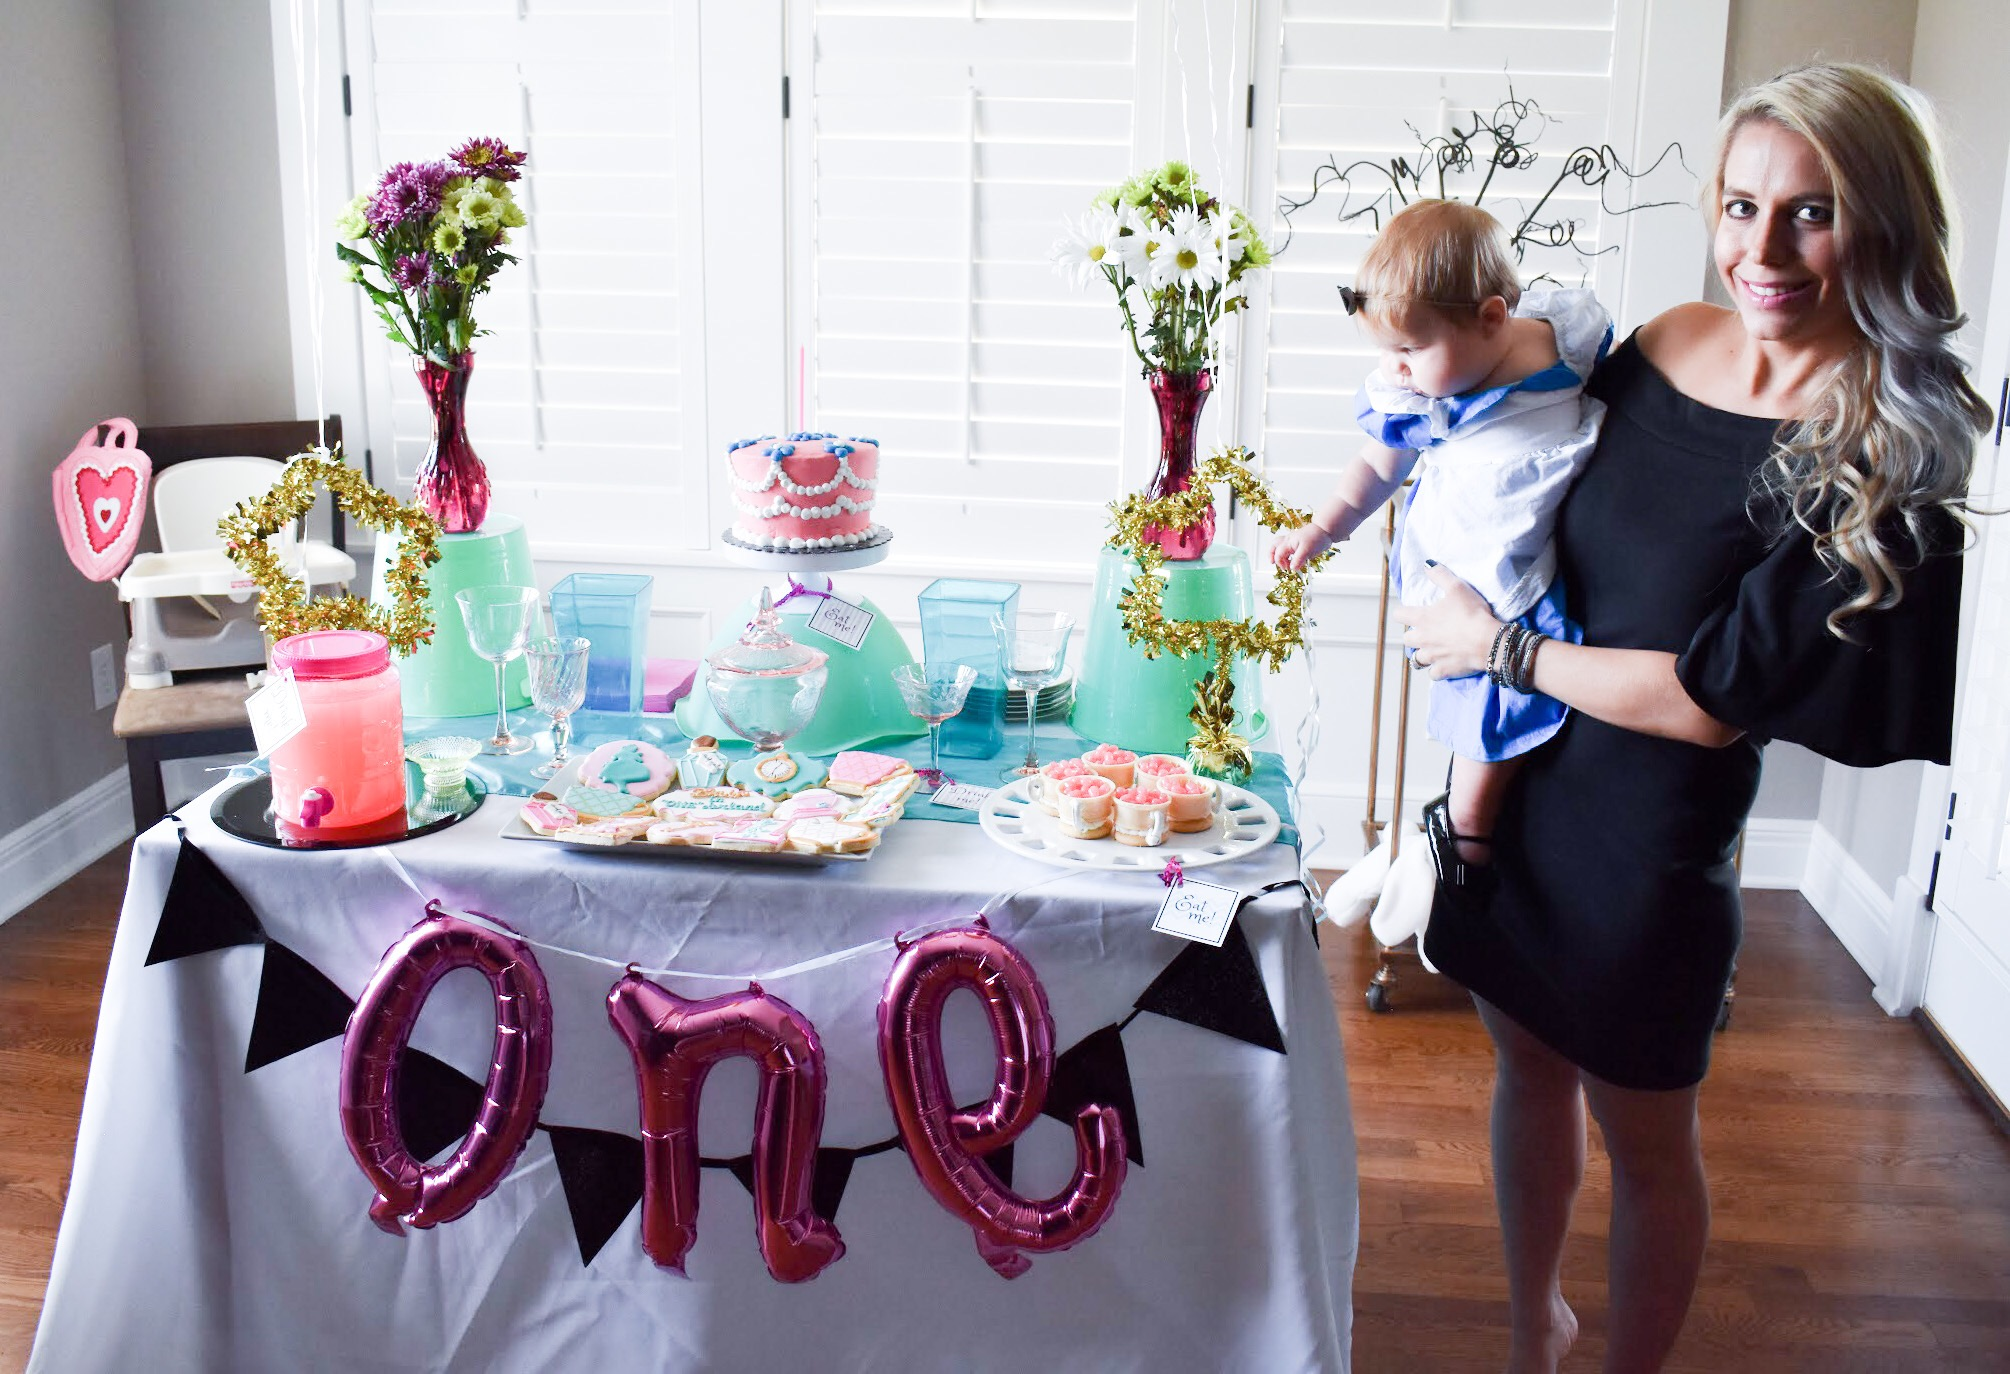 Alice in ONEderland Birthday Party - Alice in ONEderland First Birthday Party - Alice in Wonderland Birthday Party - Alice in Wonderland First Birthday Party - Inspiration, Decor, Ideas, Inspo, Decorations, Smash Cake, Cookies, Dessert Table, Desserts, Quotes, Photos, and more for your Alice in ONEderland themed First Birthday Party, one of the cutest first birthday party themes for girls I've ever seen! #AliceinWonderland #AliceinONEderland #BirthdayParty #FirstBirthday #PartyIdeas